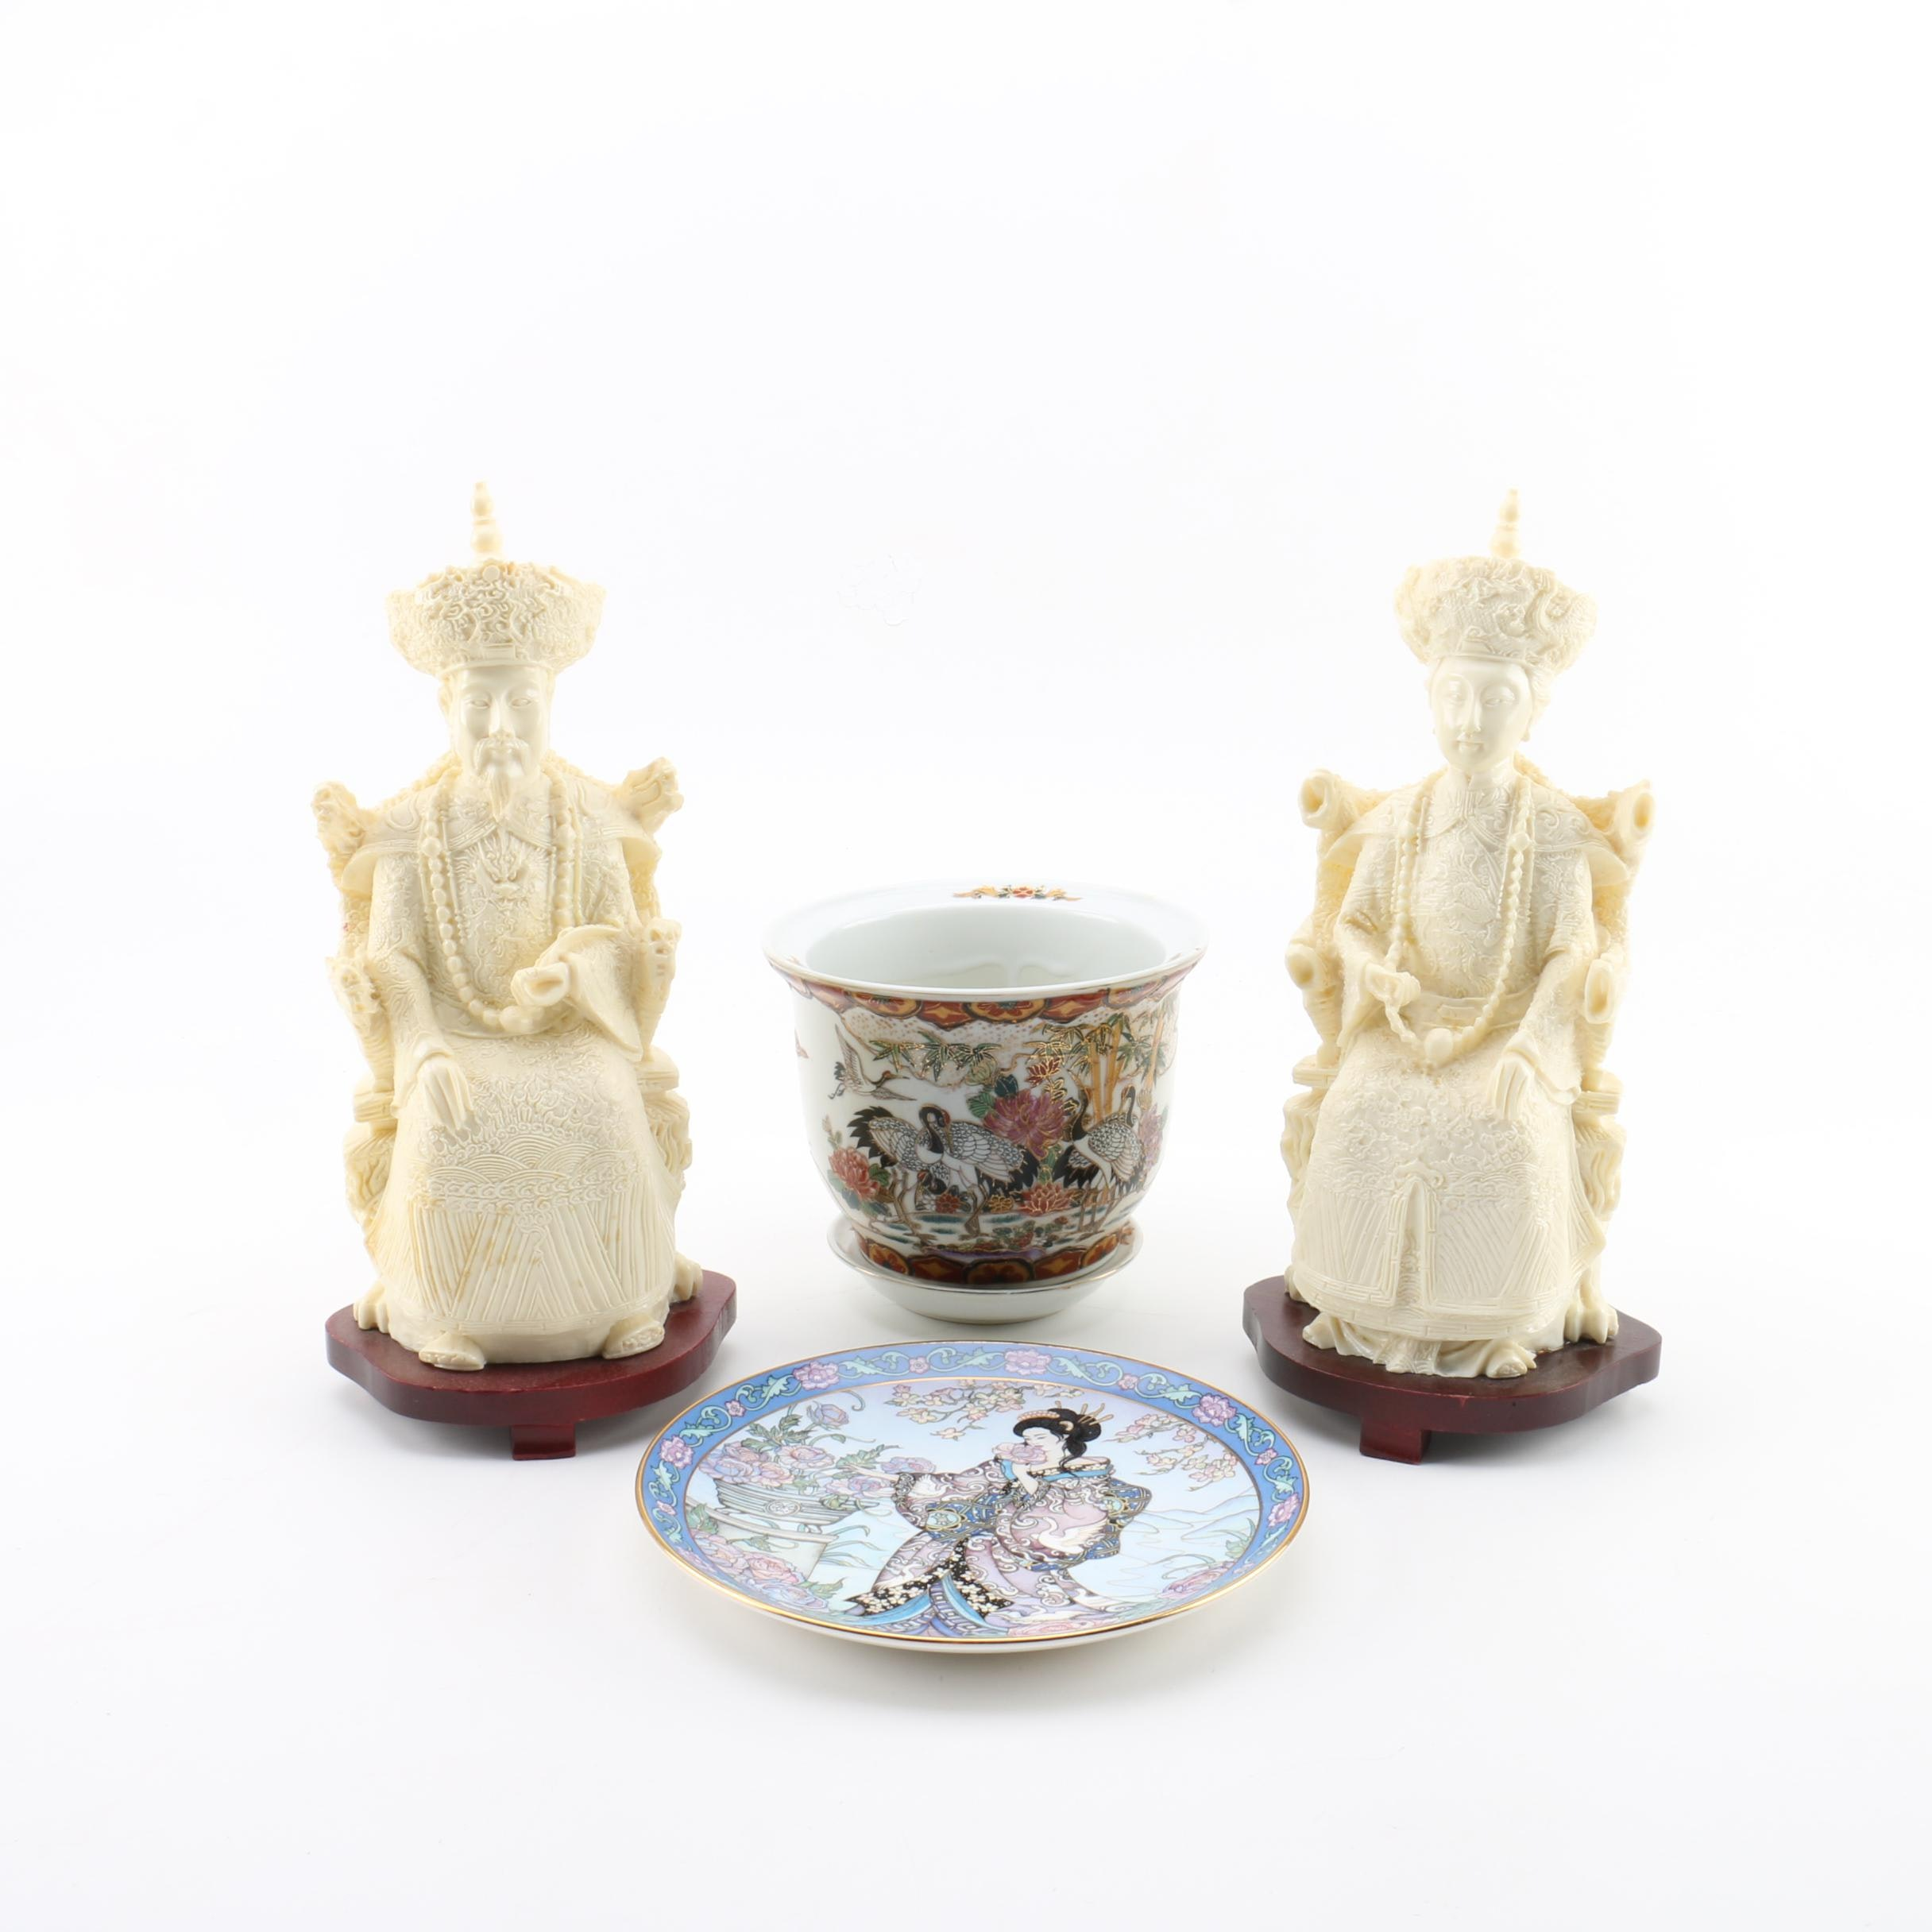 Asian Inspired Figurines, Porcelain Planter and Plate